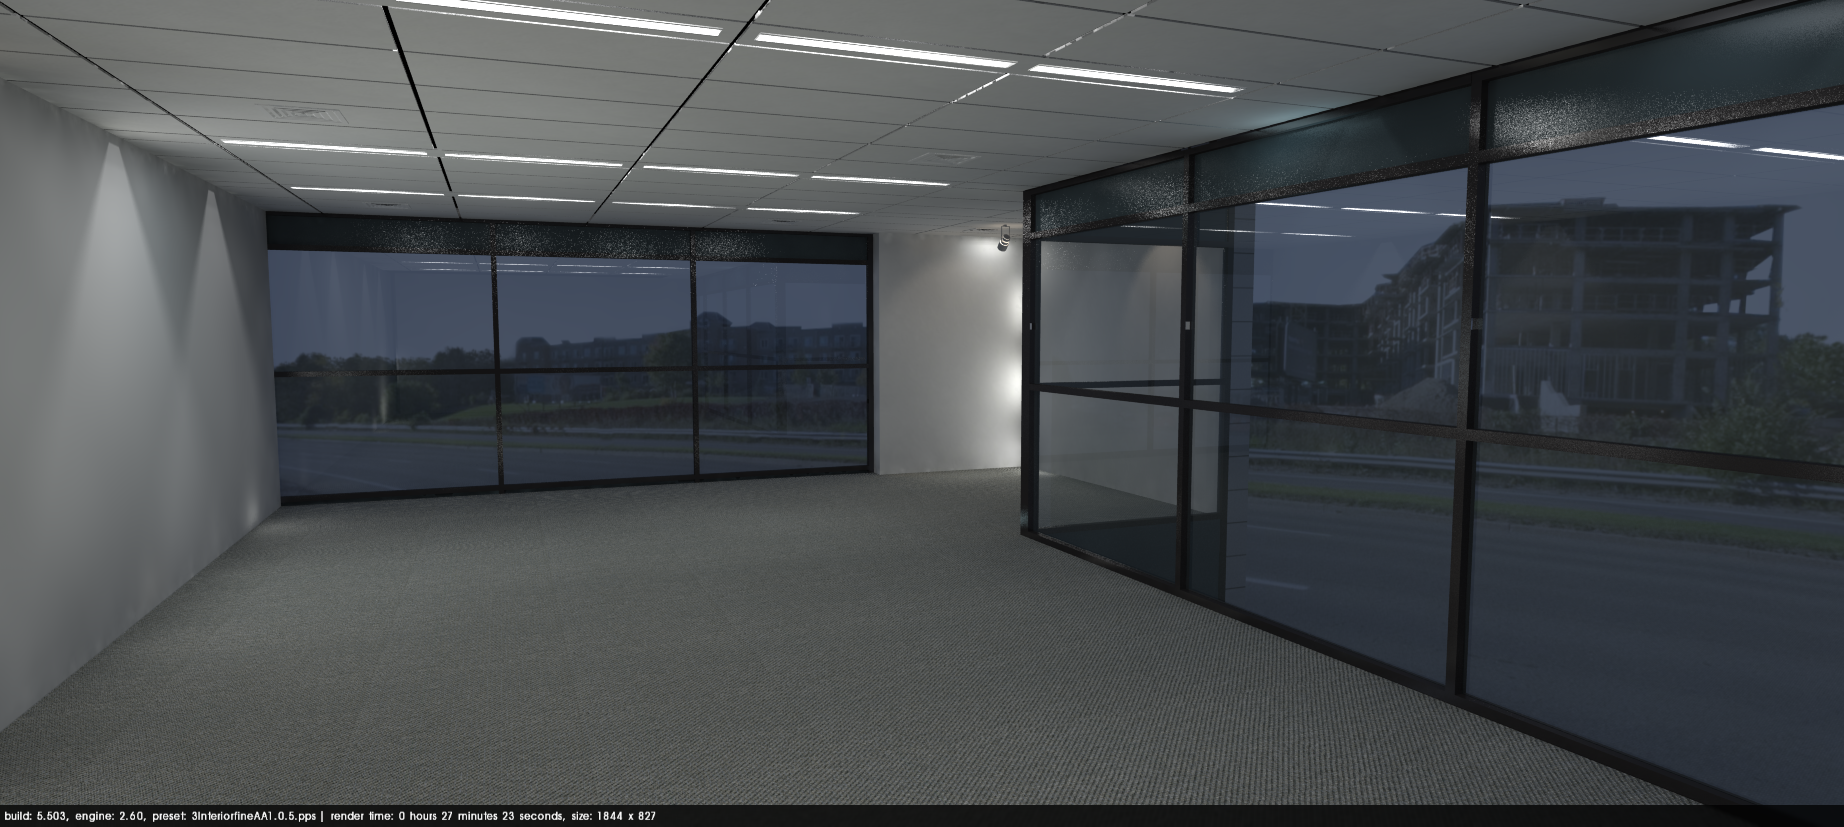 Interieur-office-v6-no-exterior-orglights-empty 2018-10-31 14513600000.png